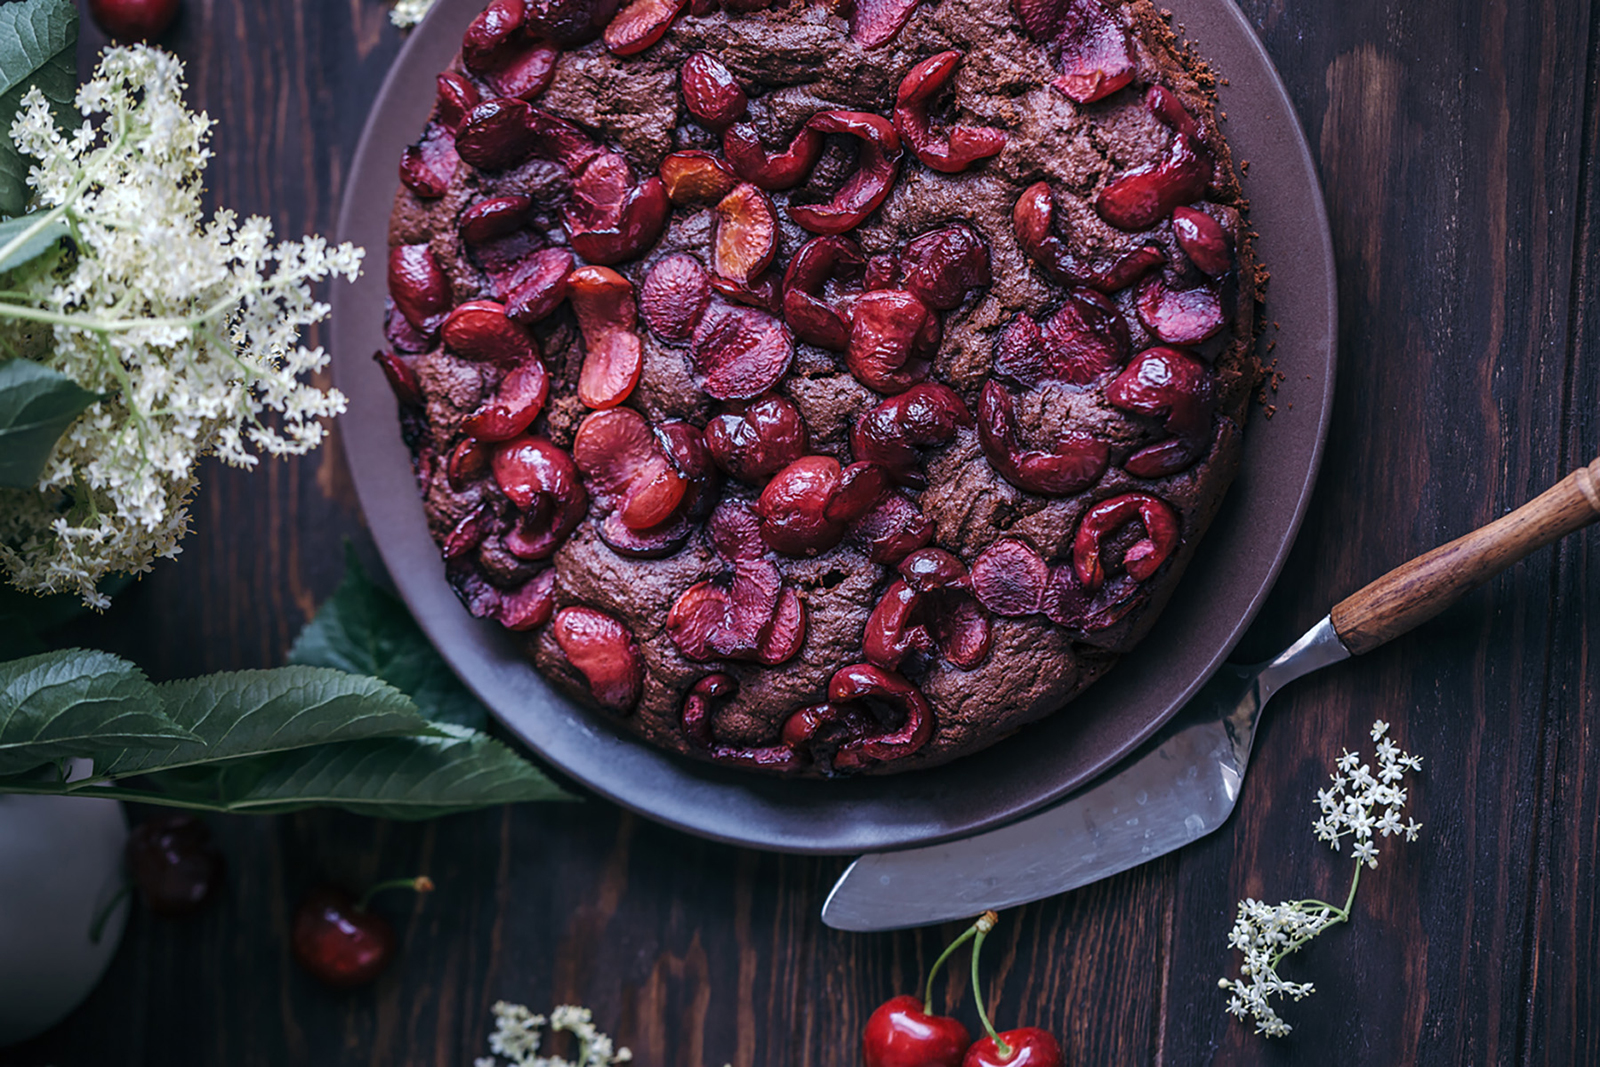 Vegan Thanksgiving Ideas - Vegan Cherry Chocolate Cake